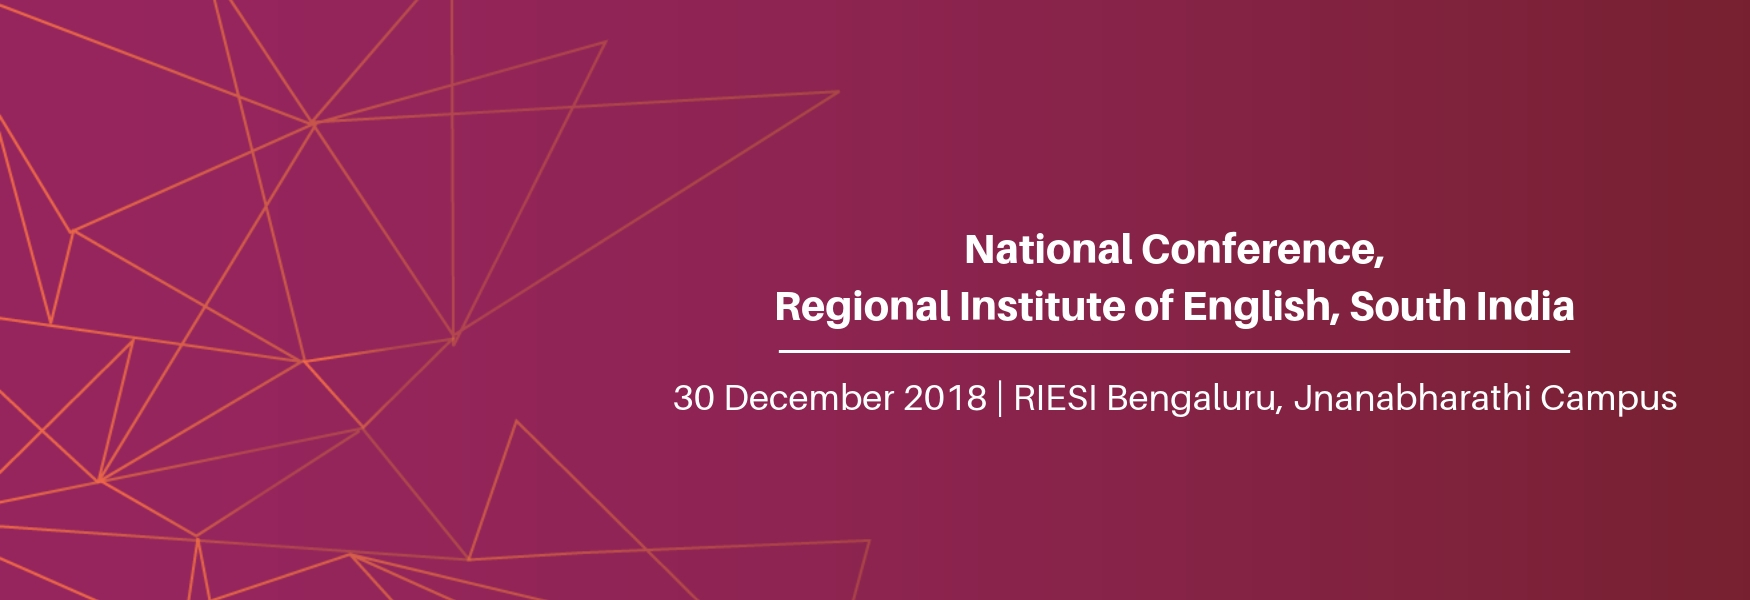 National Conference at RIESI